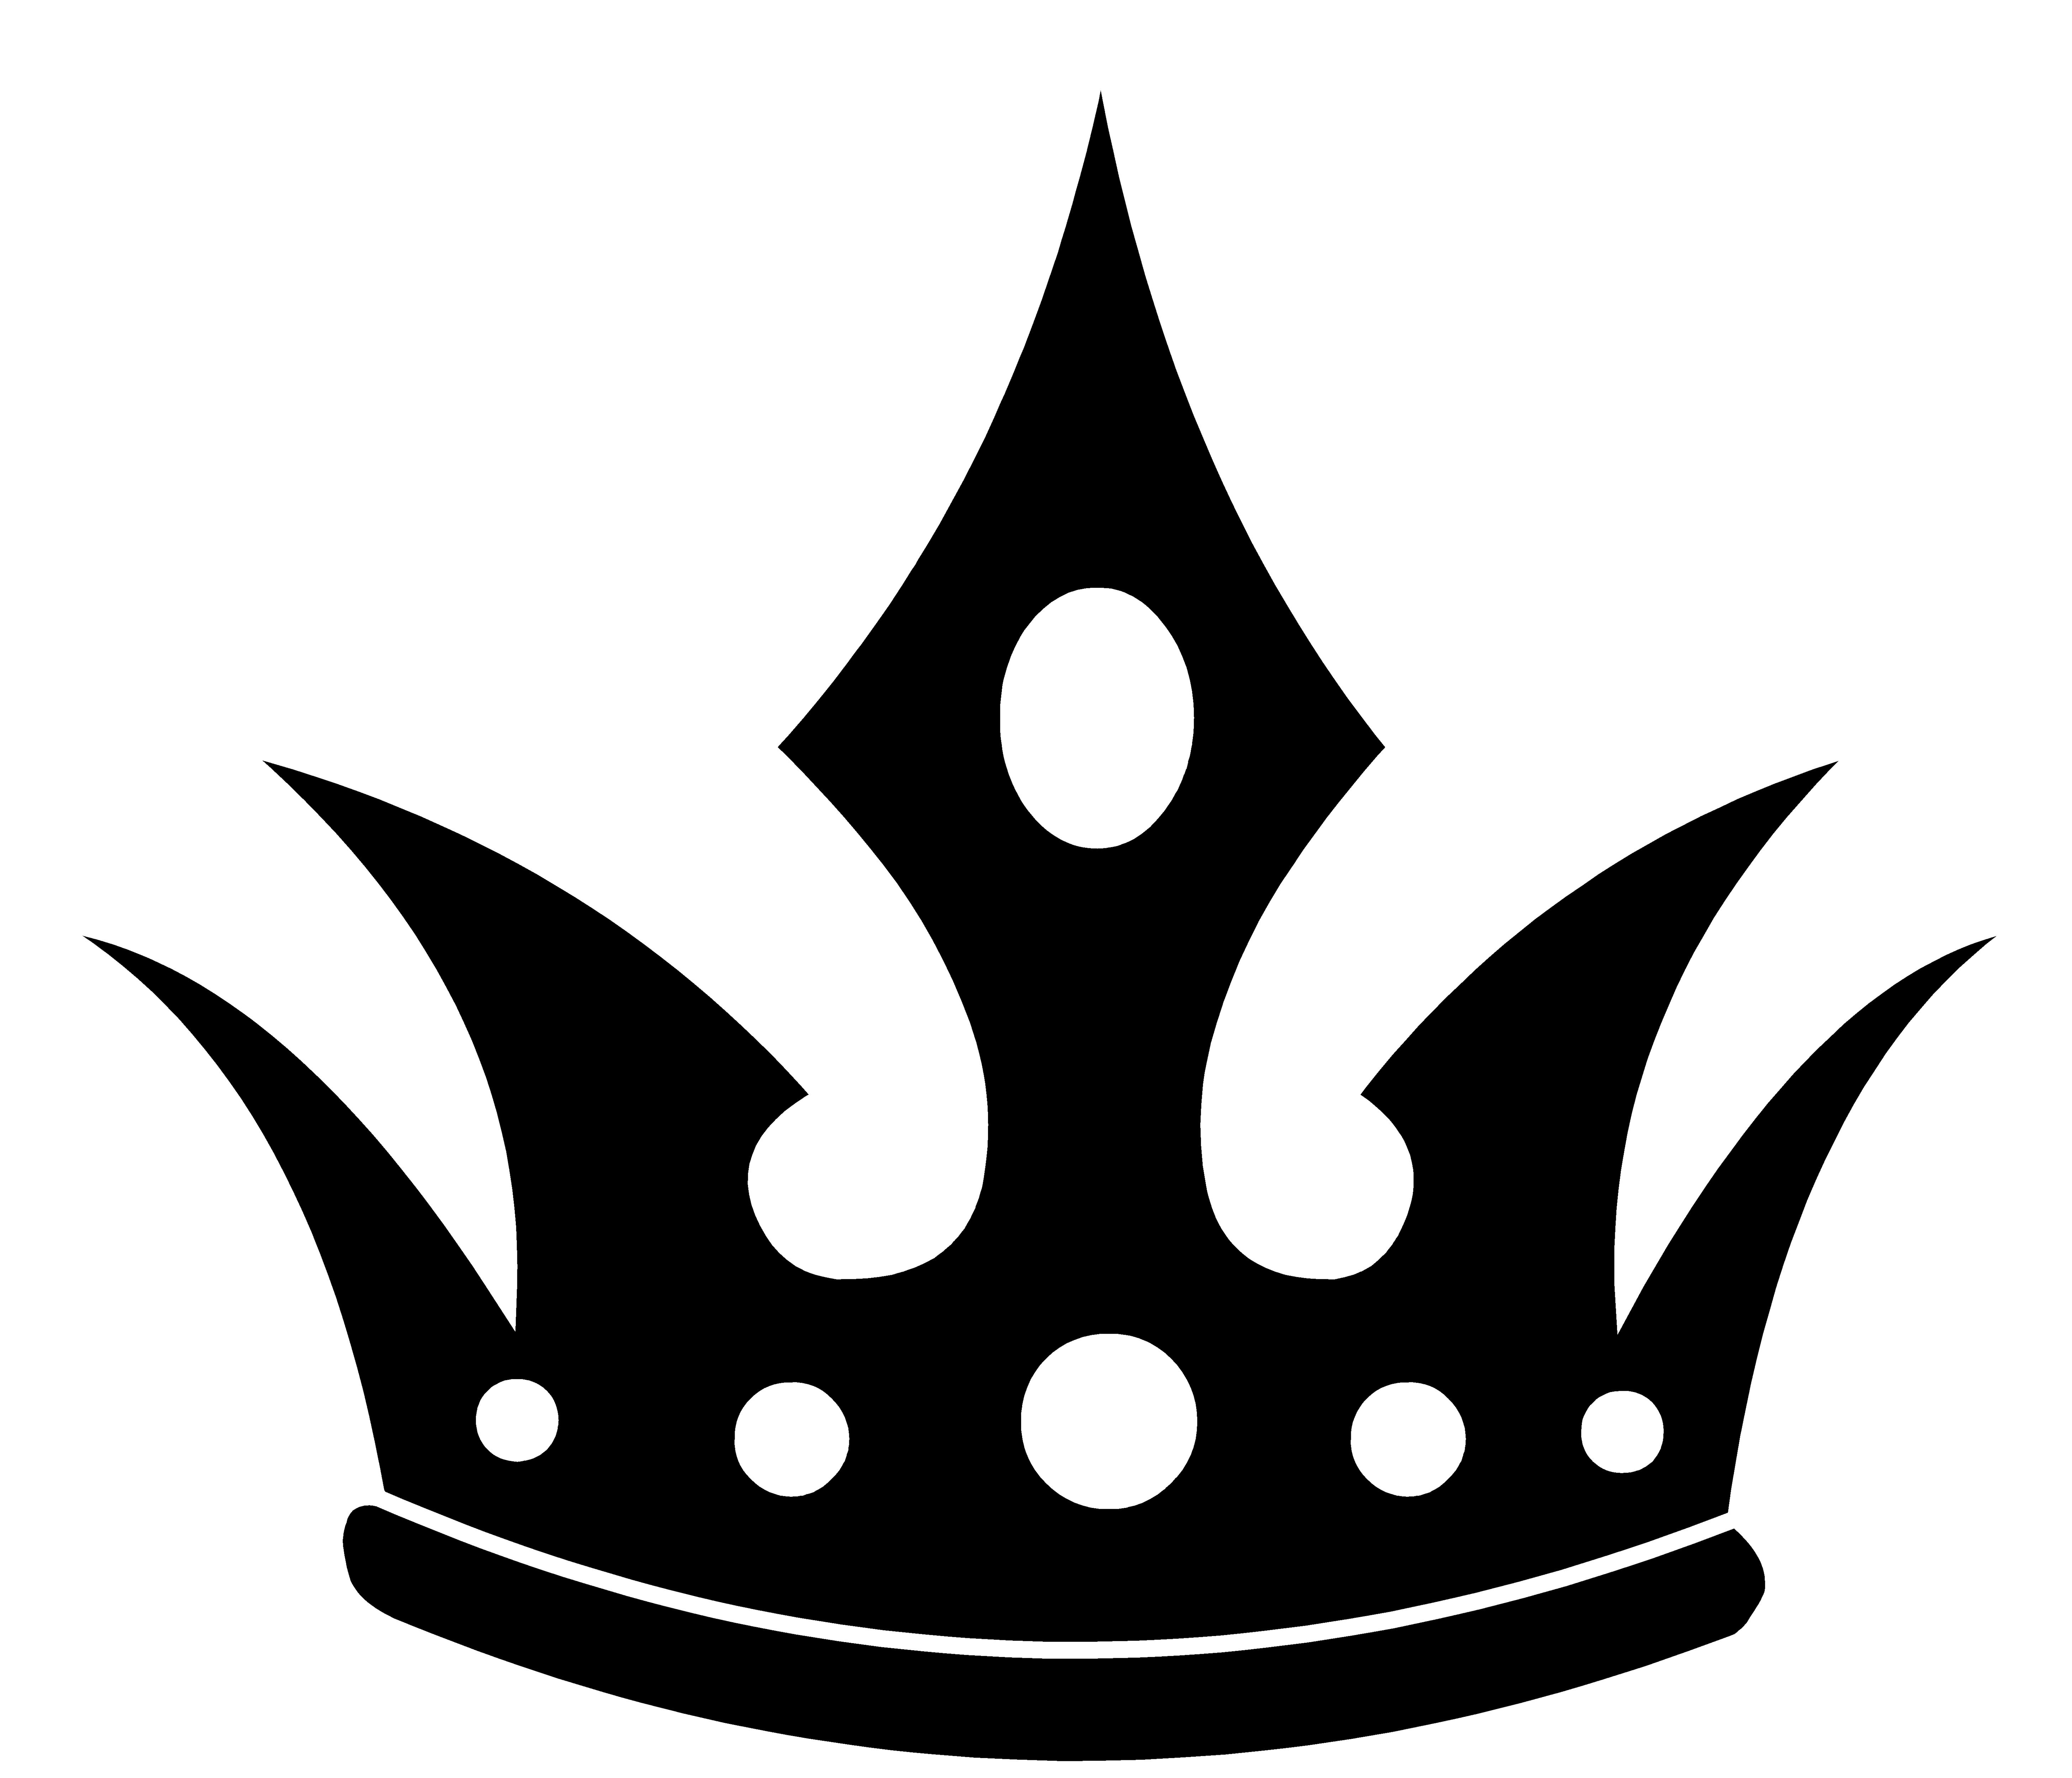 Hats drawing crown. Best clipart king images